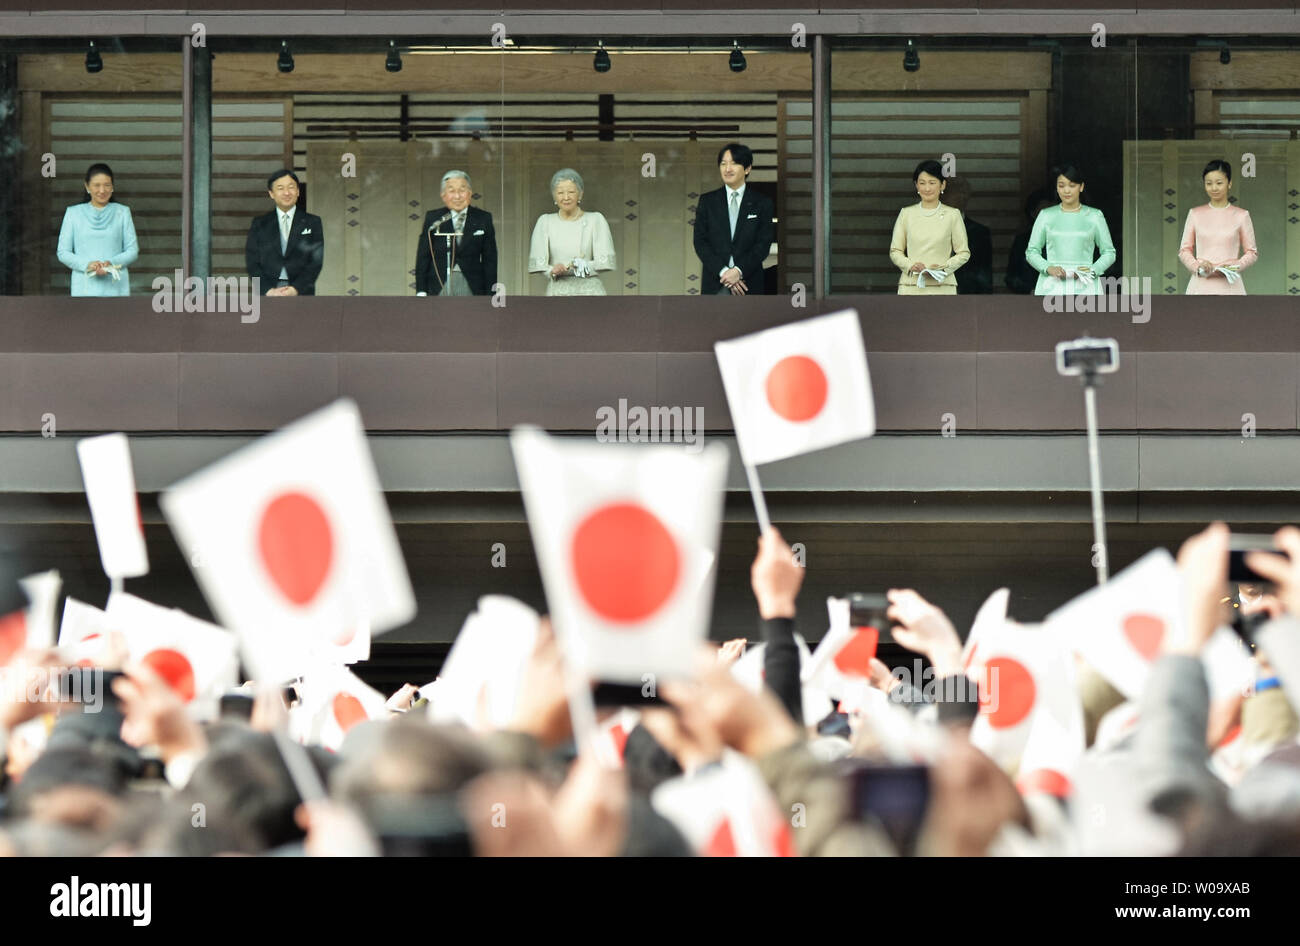 Japan's Emperor Akihito(L3) speaks to well-wishers during a New Year greeting at the East Plaza, Imperial Palace in Tokyo, Japan, on January 2, 2015.     UPI/Keizo Mori - Stock Image